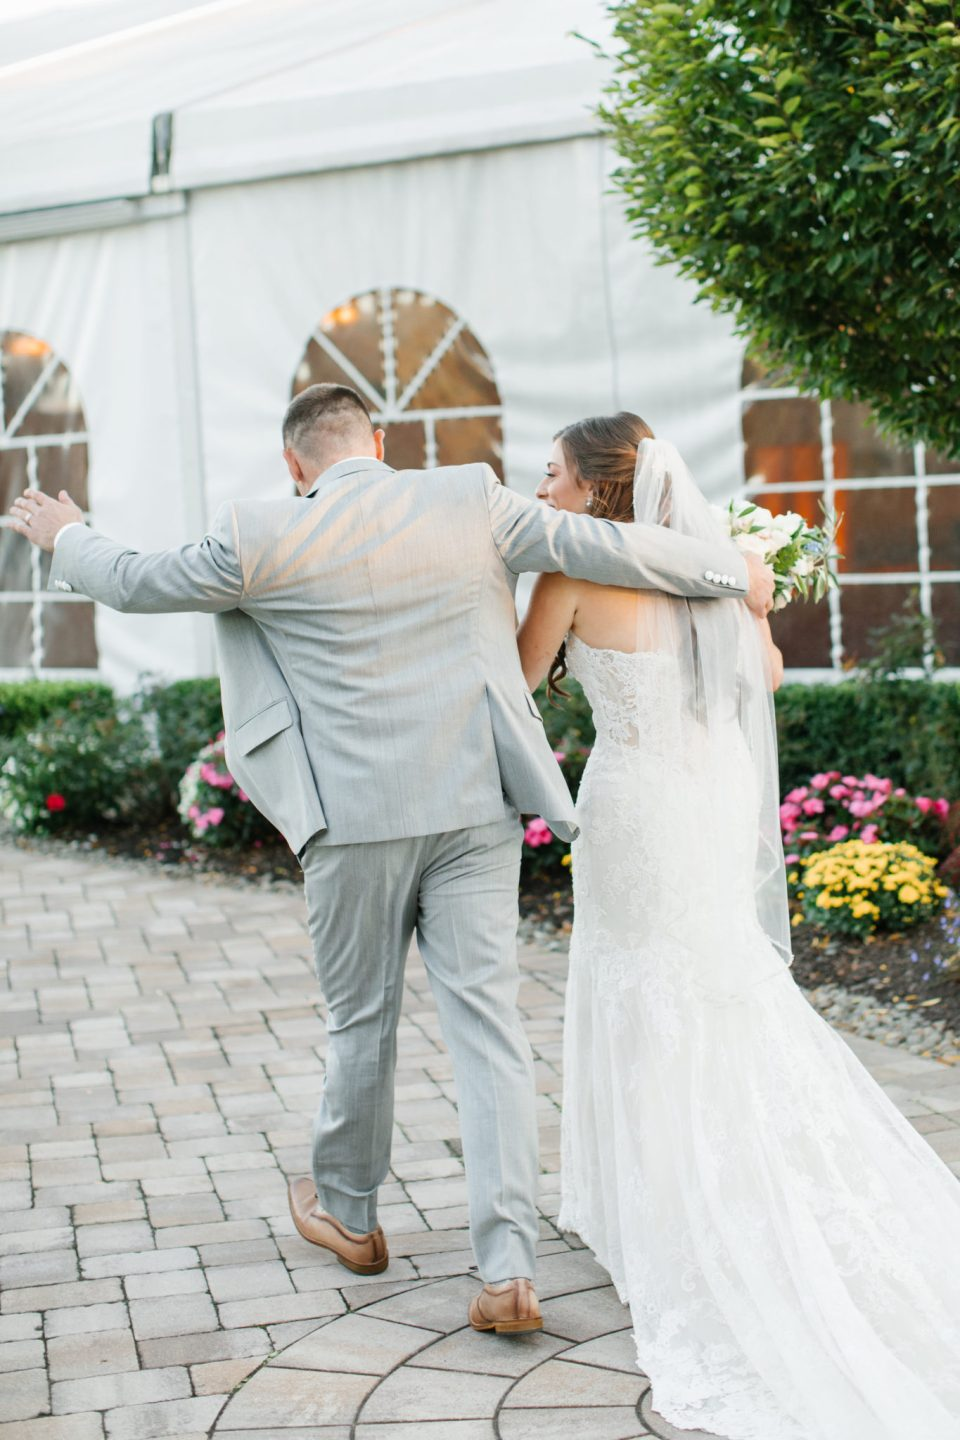 bride and groom dance out of wedding ceremony photographed by Ashley Mac Photographs